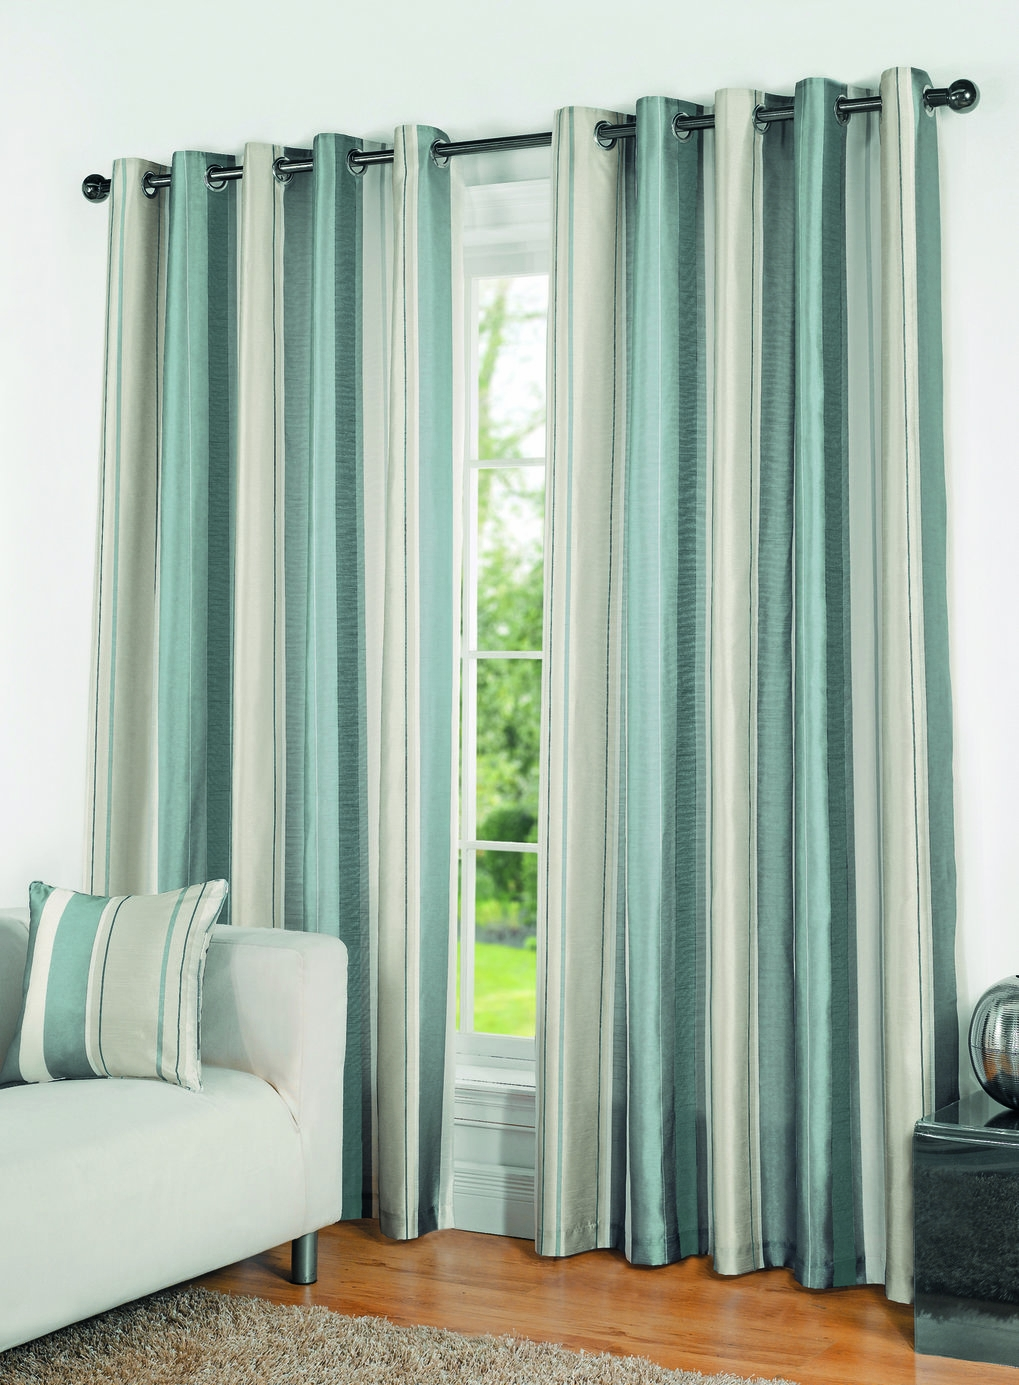 Duck Egg Casa Stripe Curtains Bhs Home Decor Pinterest For Duck Egg Blue Striped Curtains (View 7 of 15)